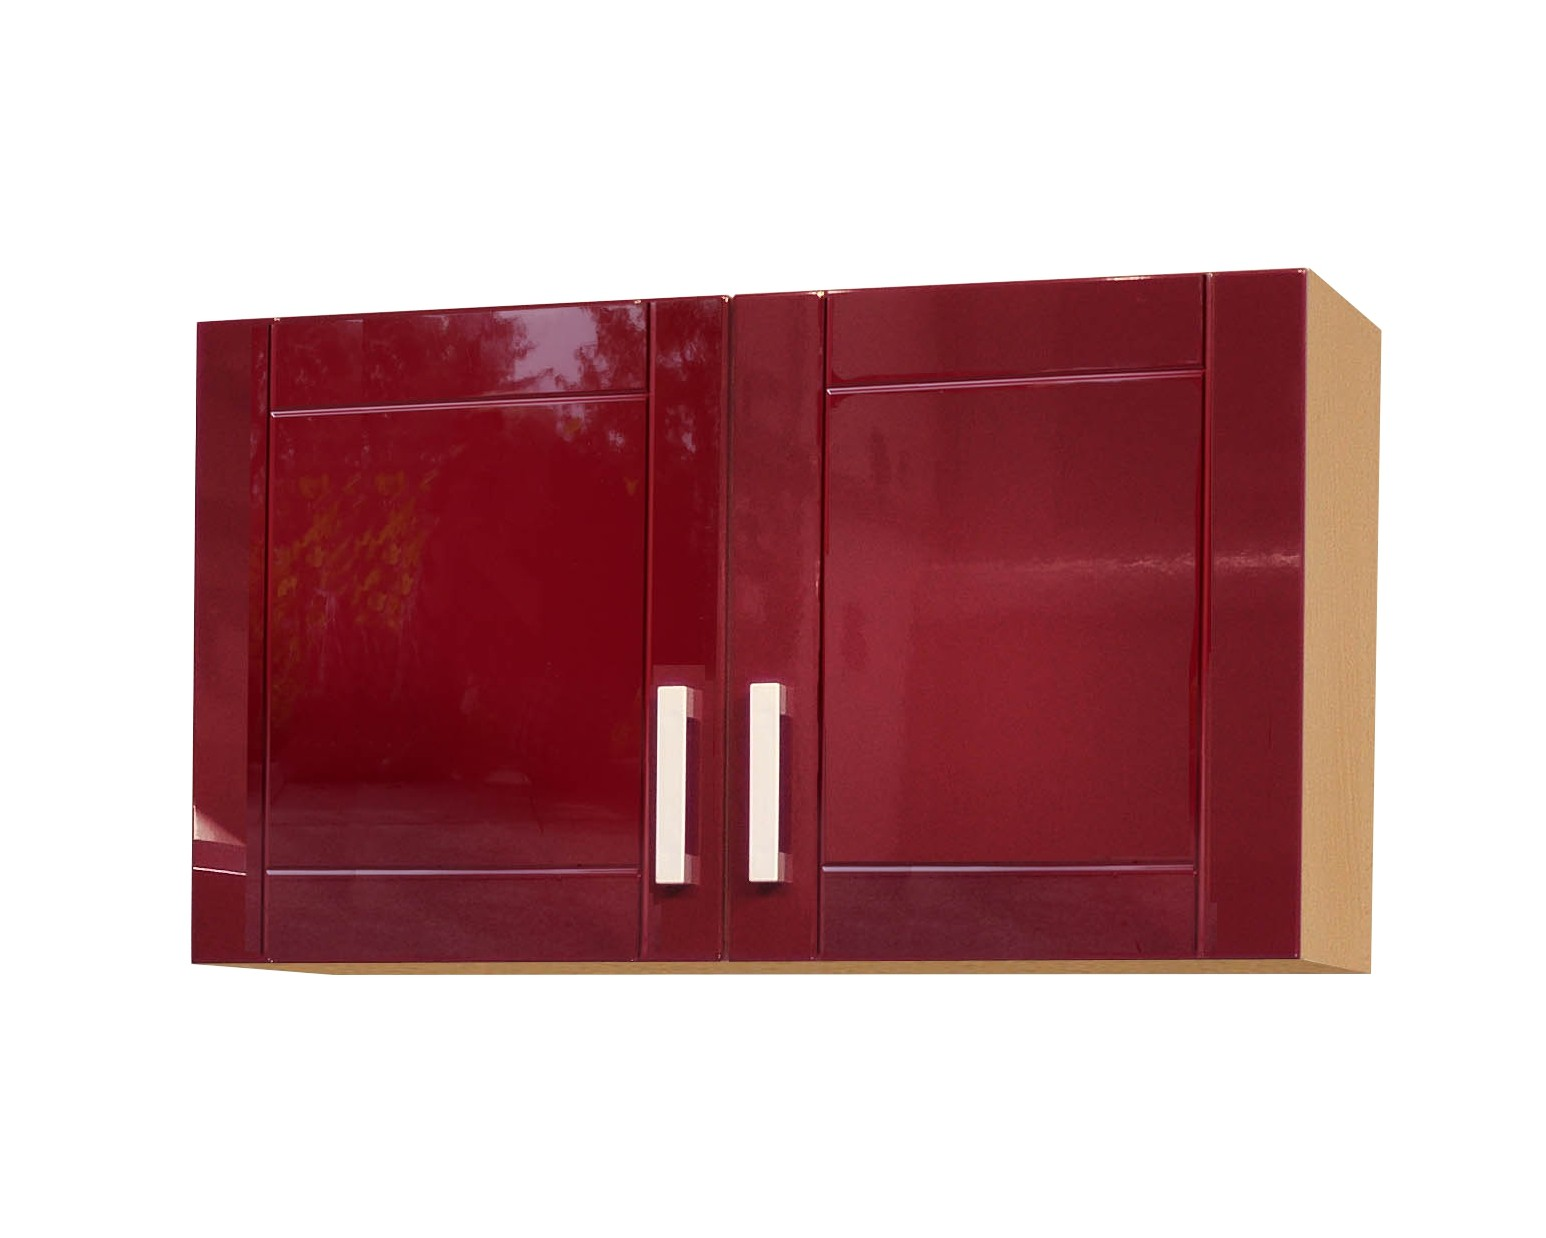 neu k chen h ngeschrank varel k chenschrank oberschrank 100cm rot. Black Bedroom Furniture Sets. Home Design Ideas